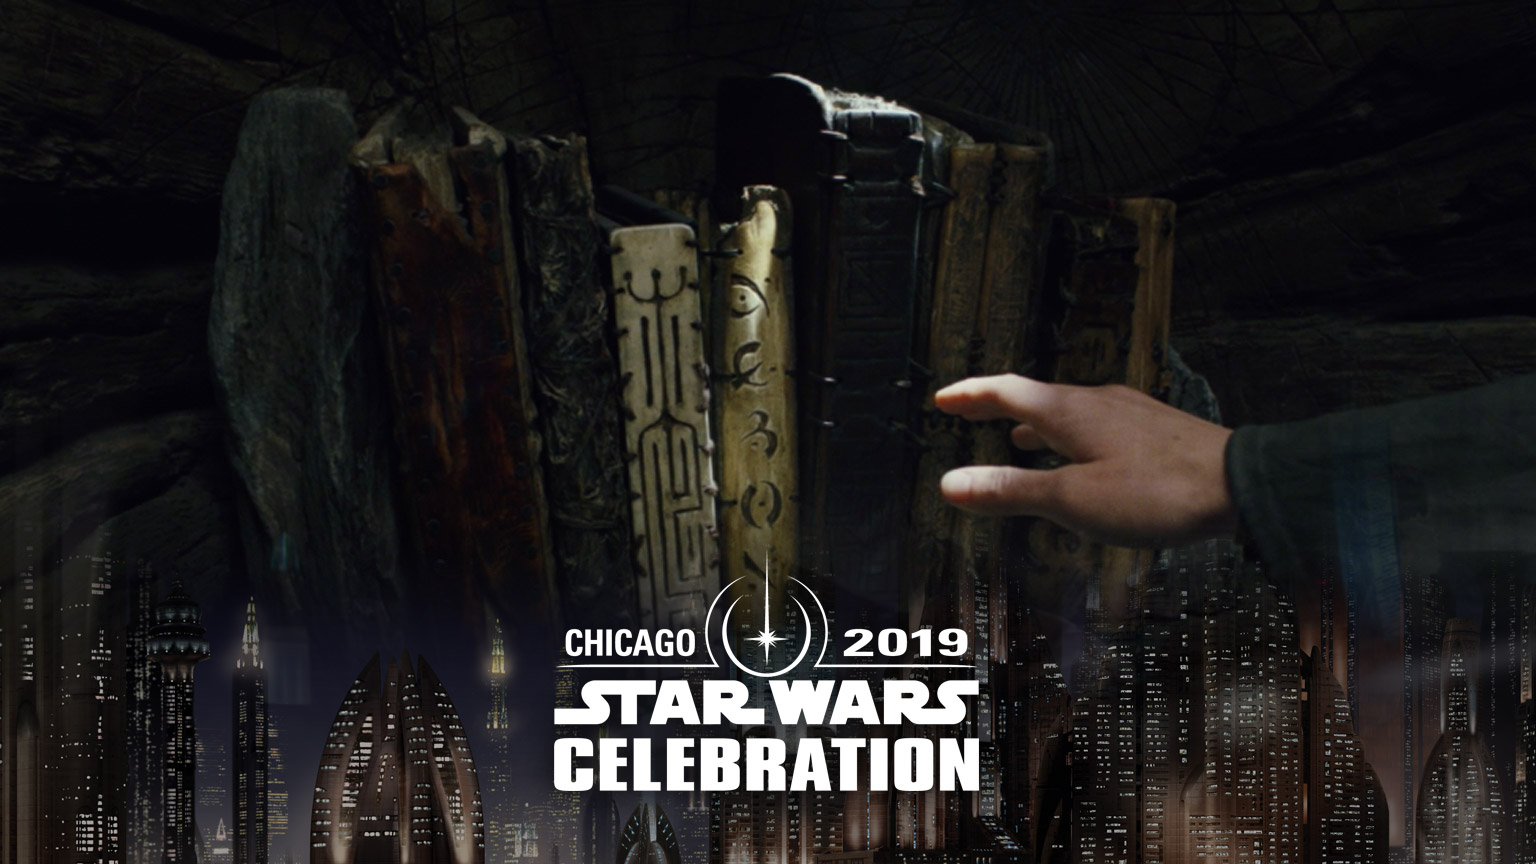 Star Wars Celebration Orlando logo